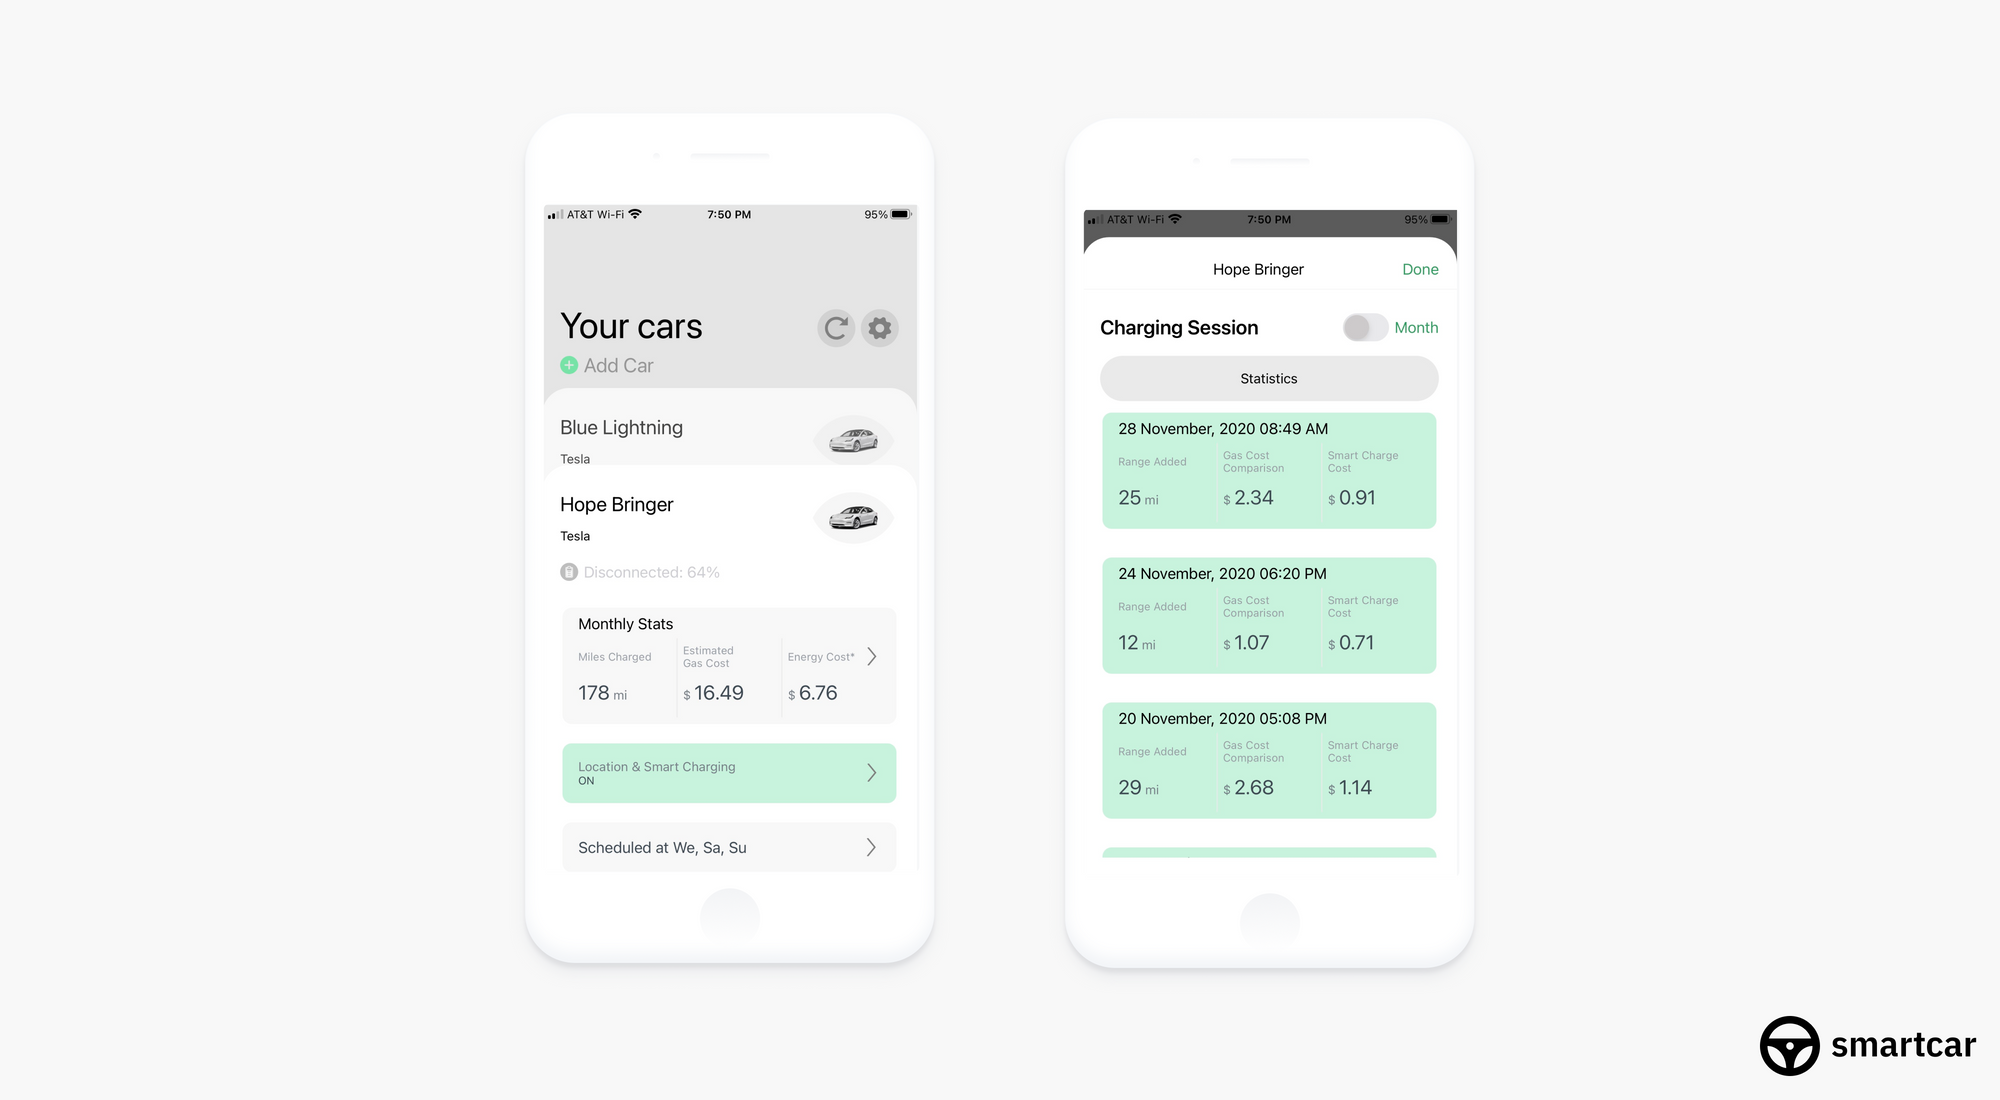 Two smartphone screens showing an EV charging app. The first screen shows a Tesla vehicle and monthly stats such as miles, energy cost, and charging schedule. The second screen shows a schedule with past charging sessions.